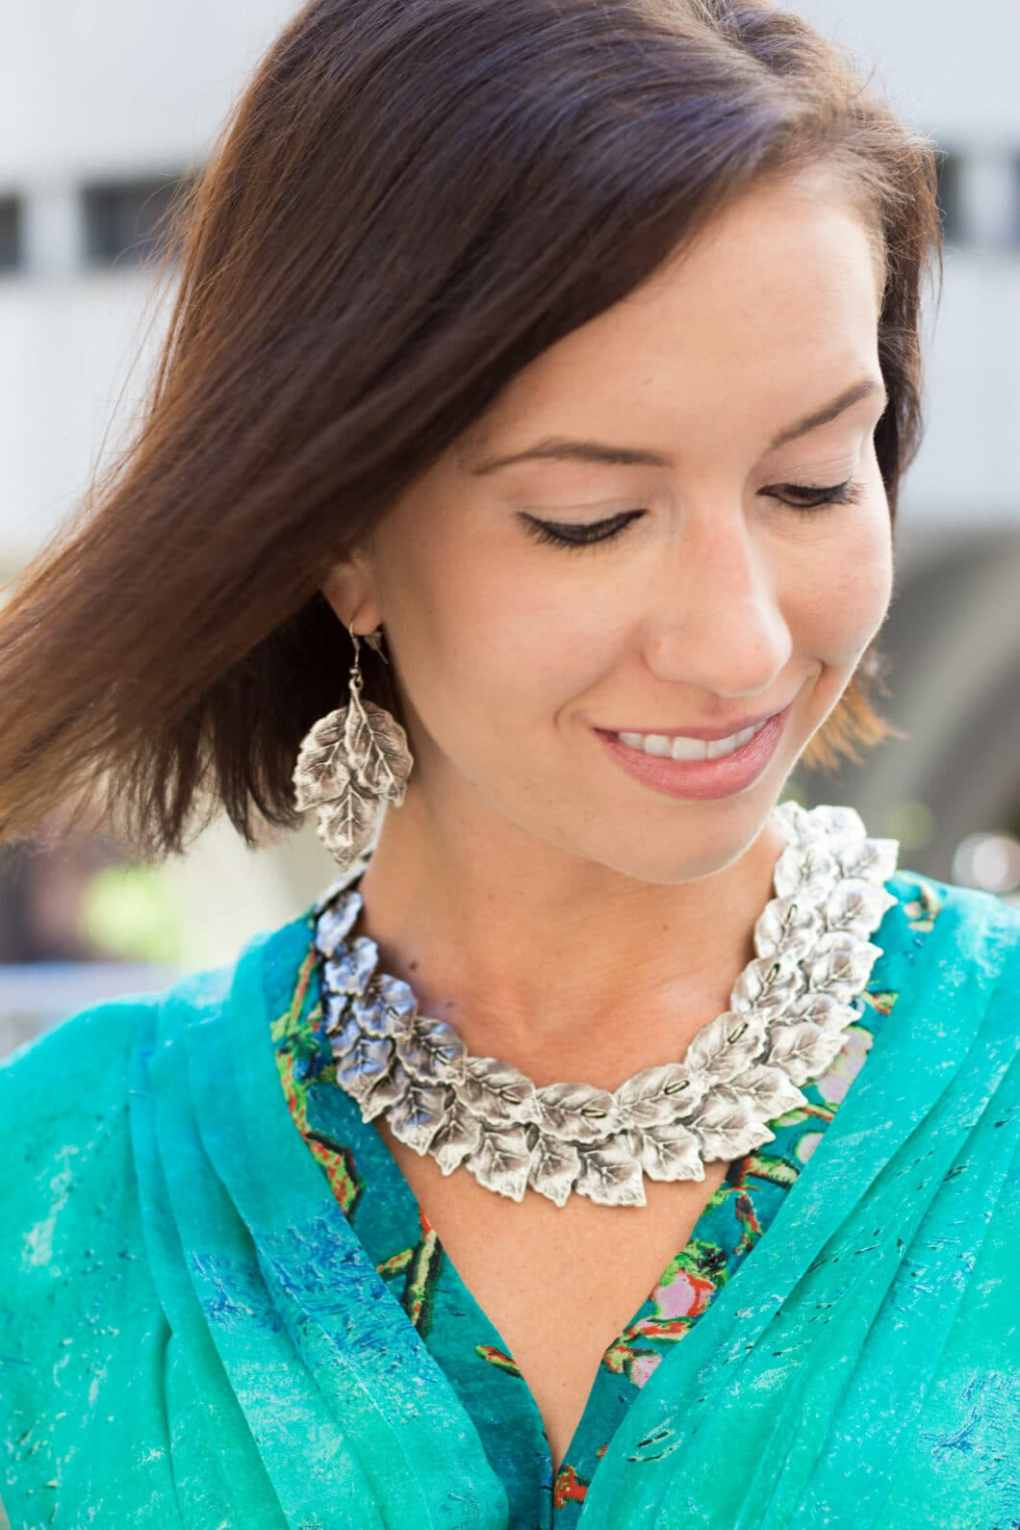 leaf necklace and earrings